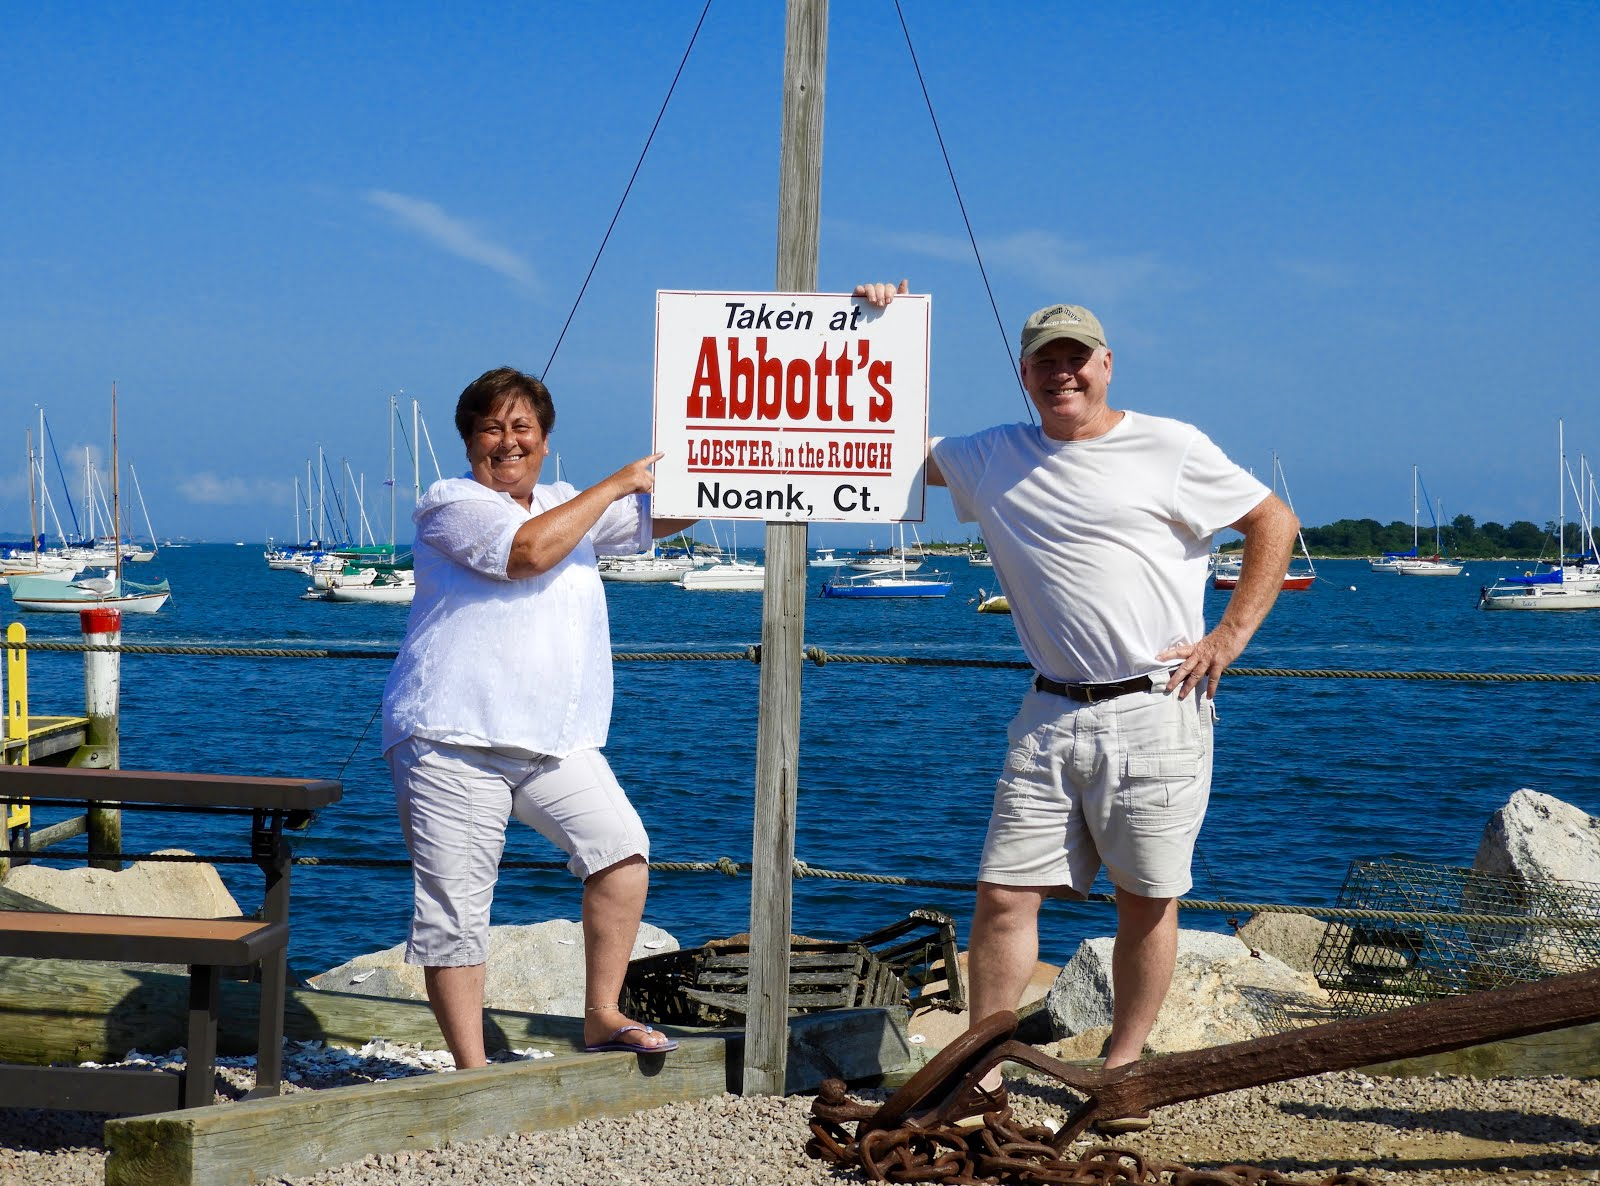 Abbotts Lobster In The Rough Is Noank Connecticut